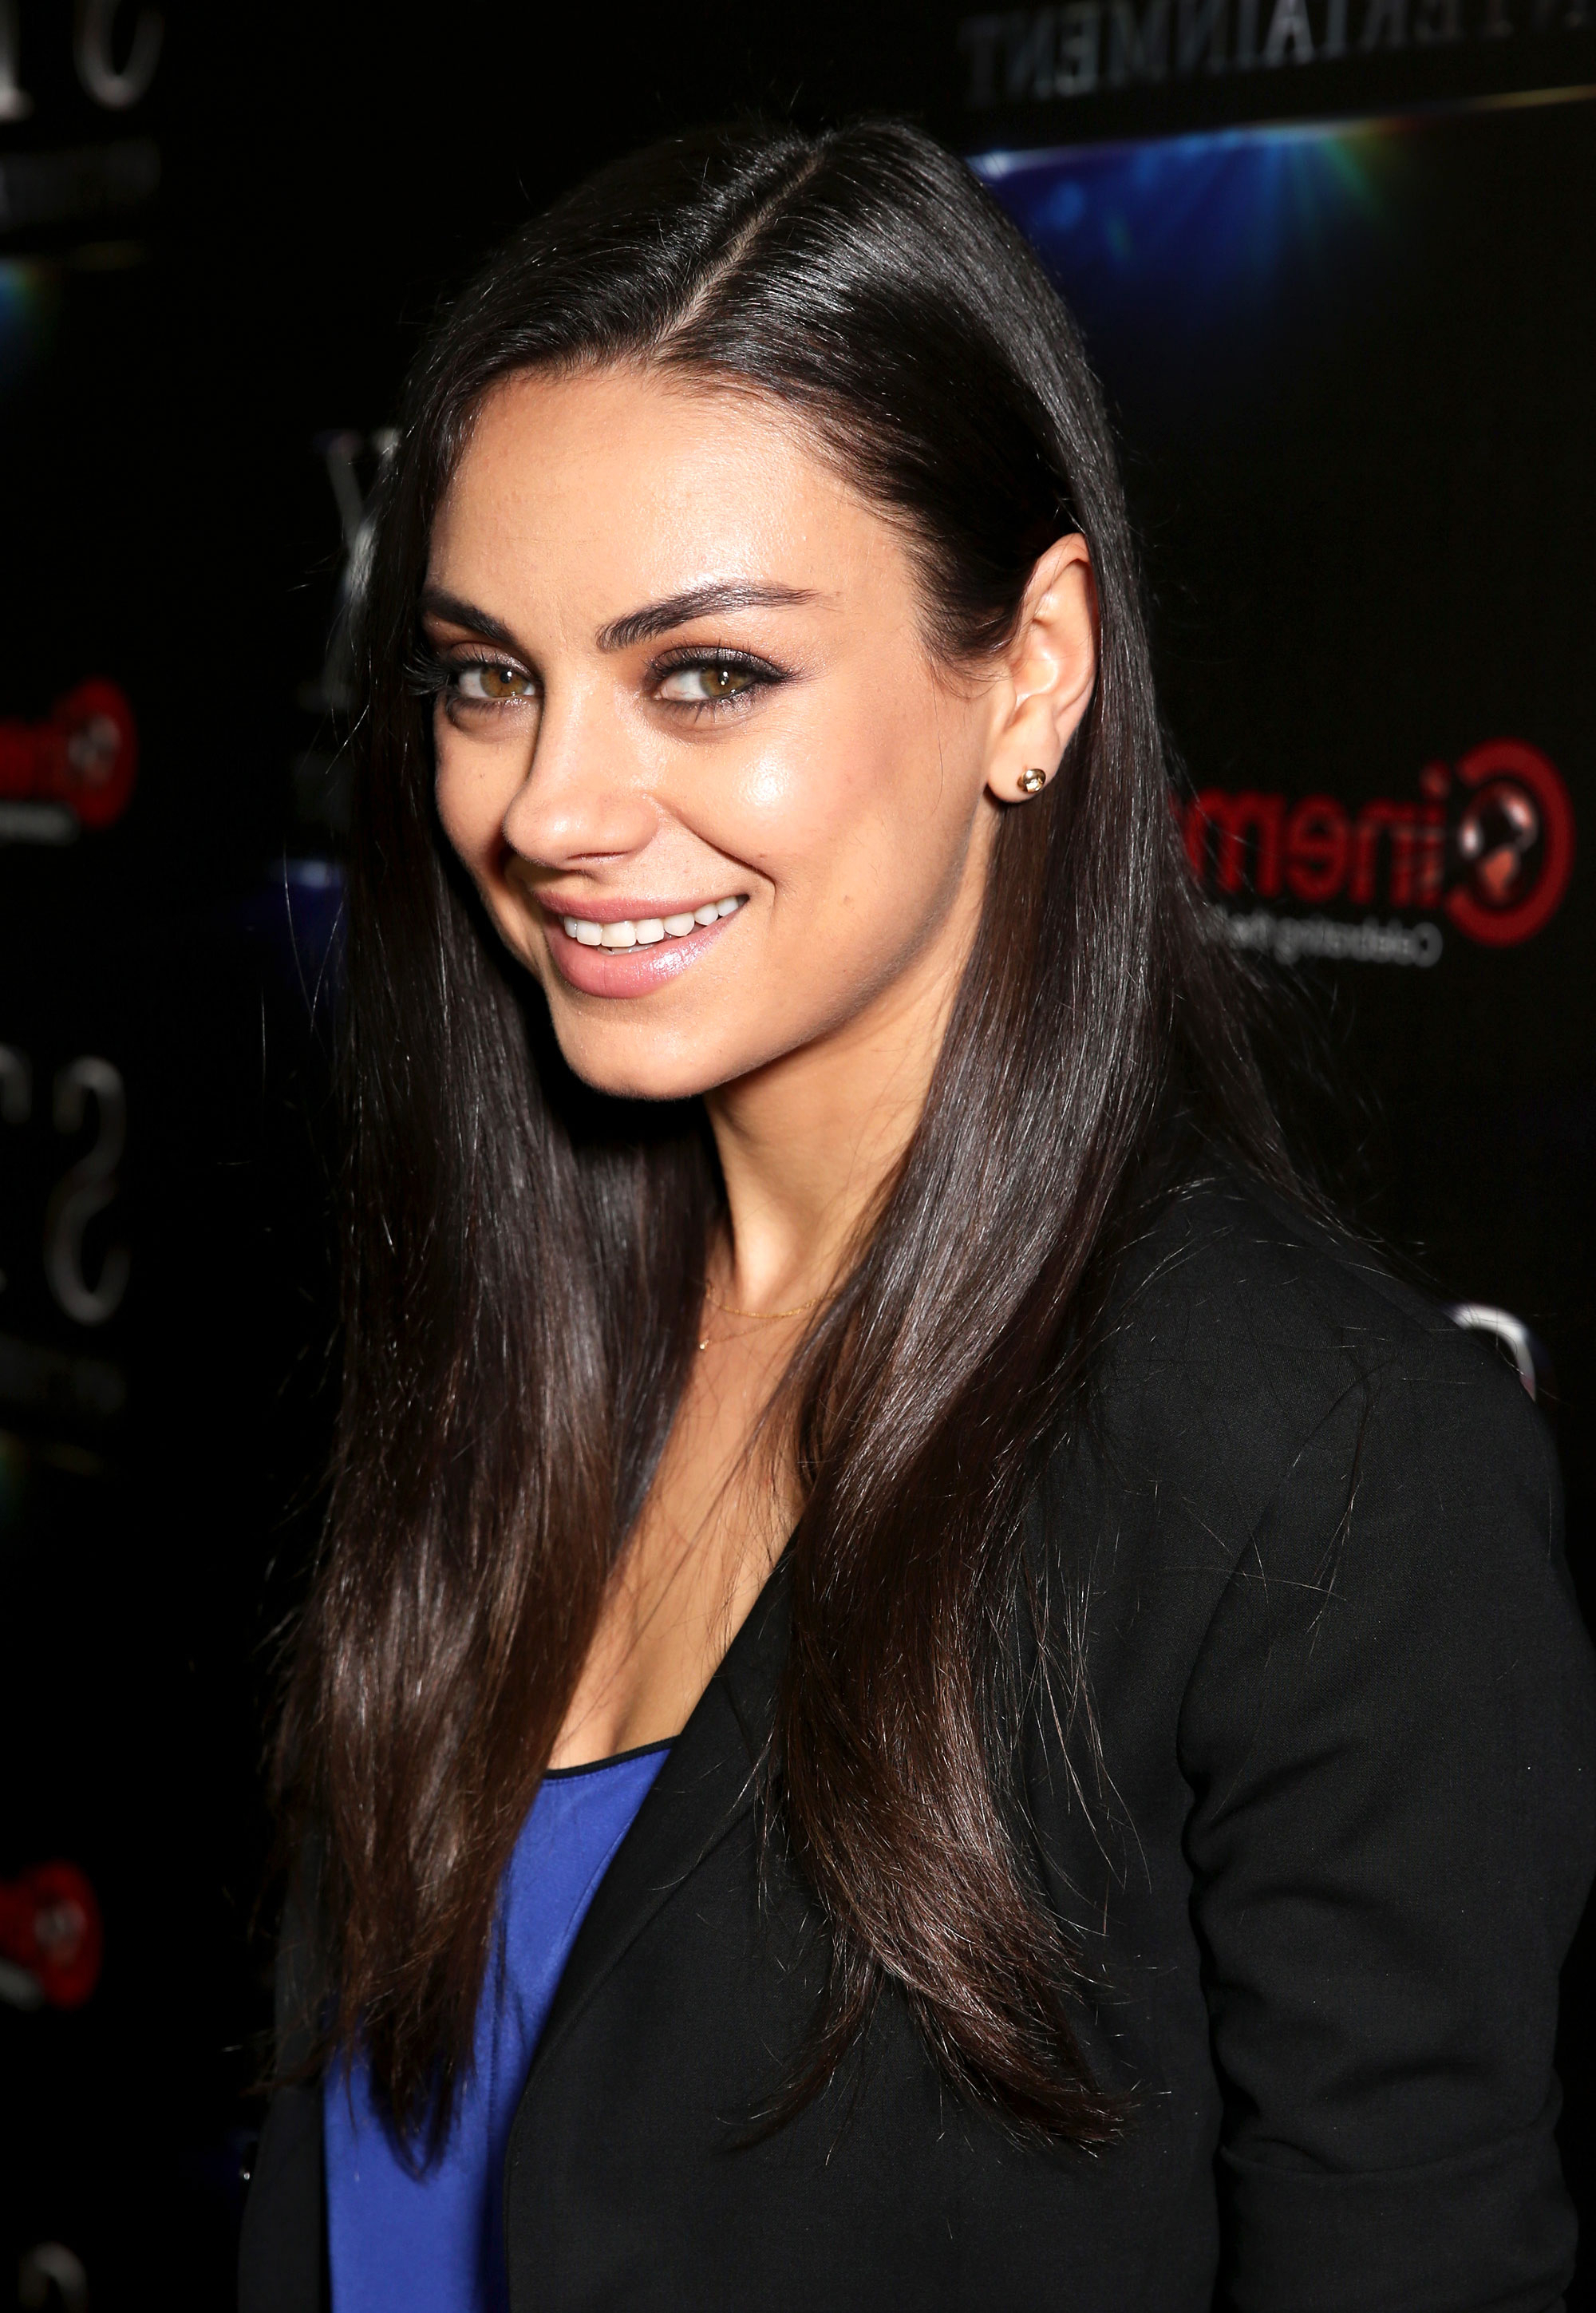 Mila Kunis Debuts A Short Hairstyle On Red Carpet: Photos For Mila Kunis Short Hairstyles (View 12 of 25)